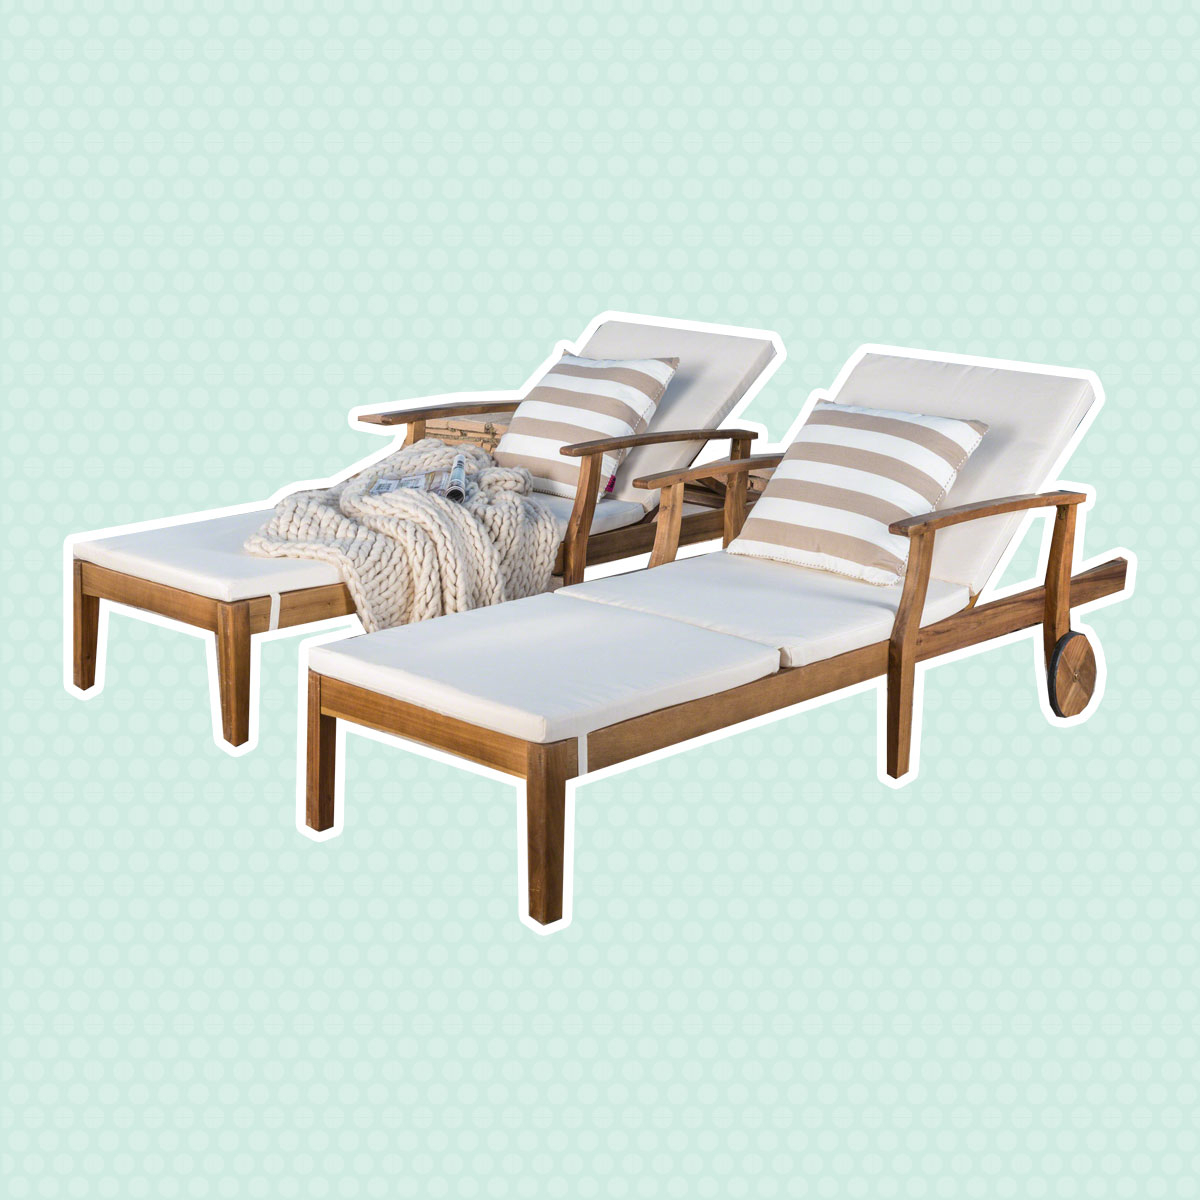 Famous Perla Outdoor Acacia Wood Chaise Lounges Inside The Best Patio Furniture For Your Backyard (View 18 of 25)